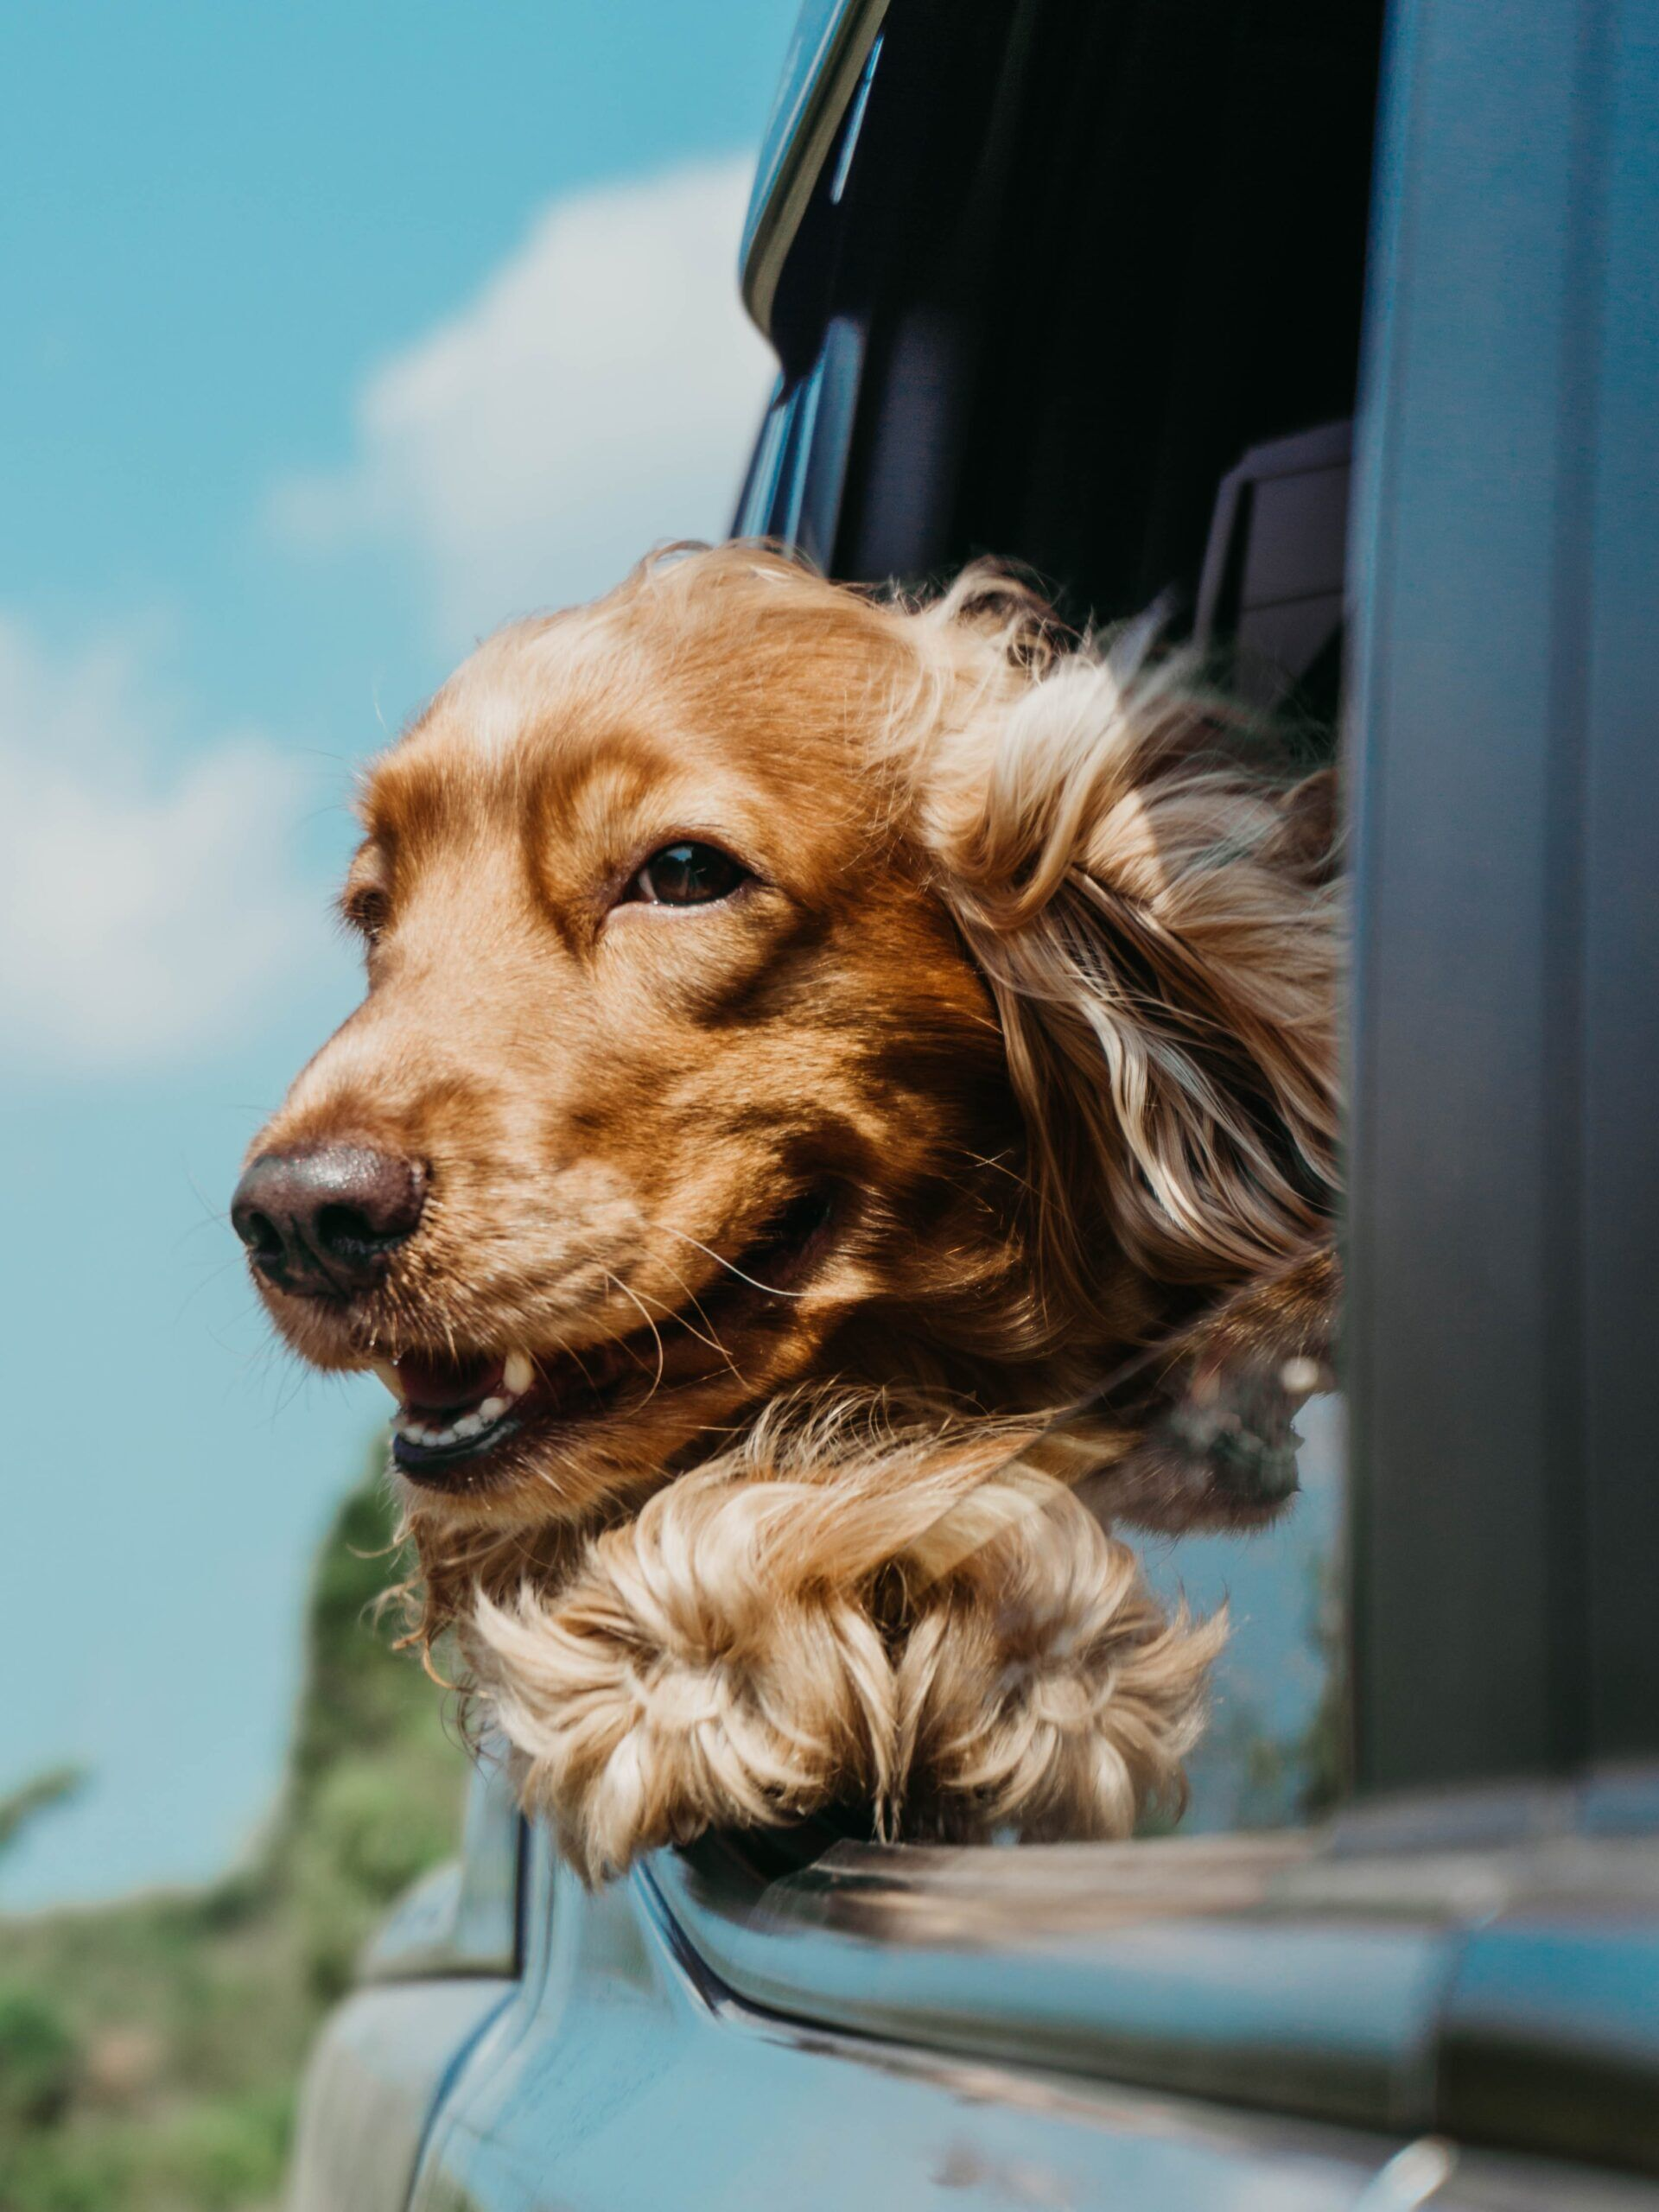 dog's head out of window while riding in car